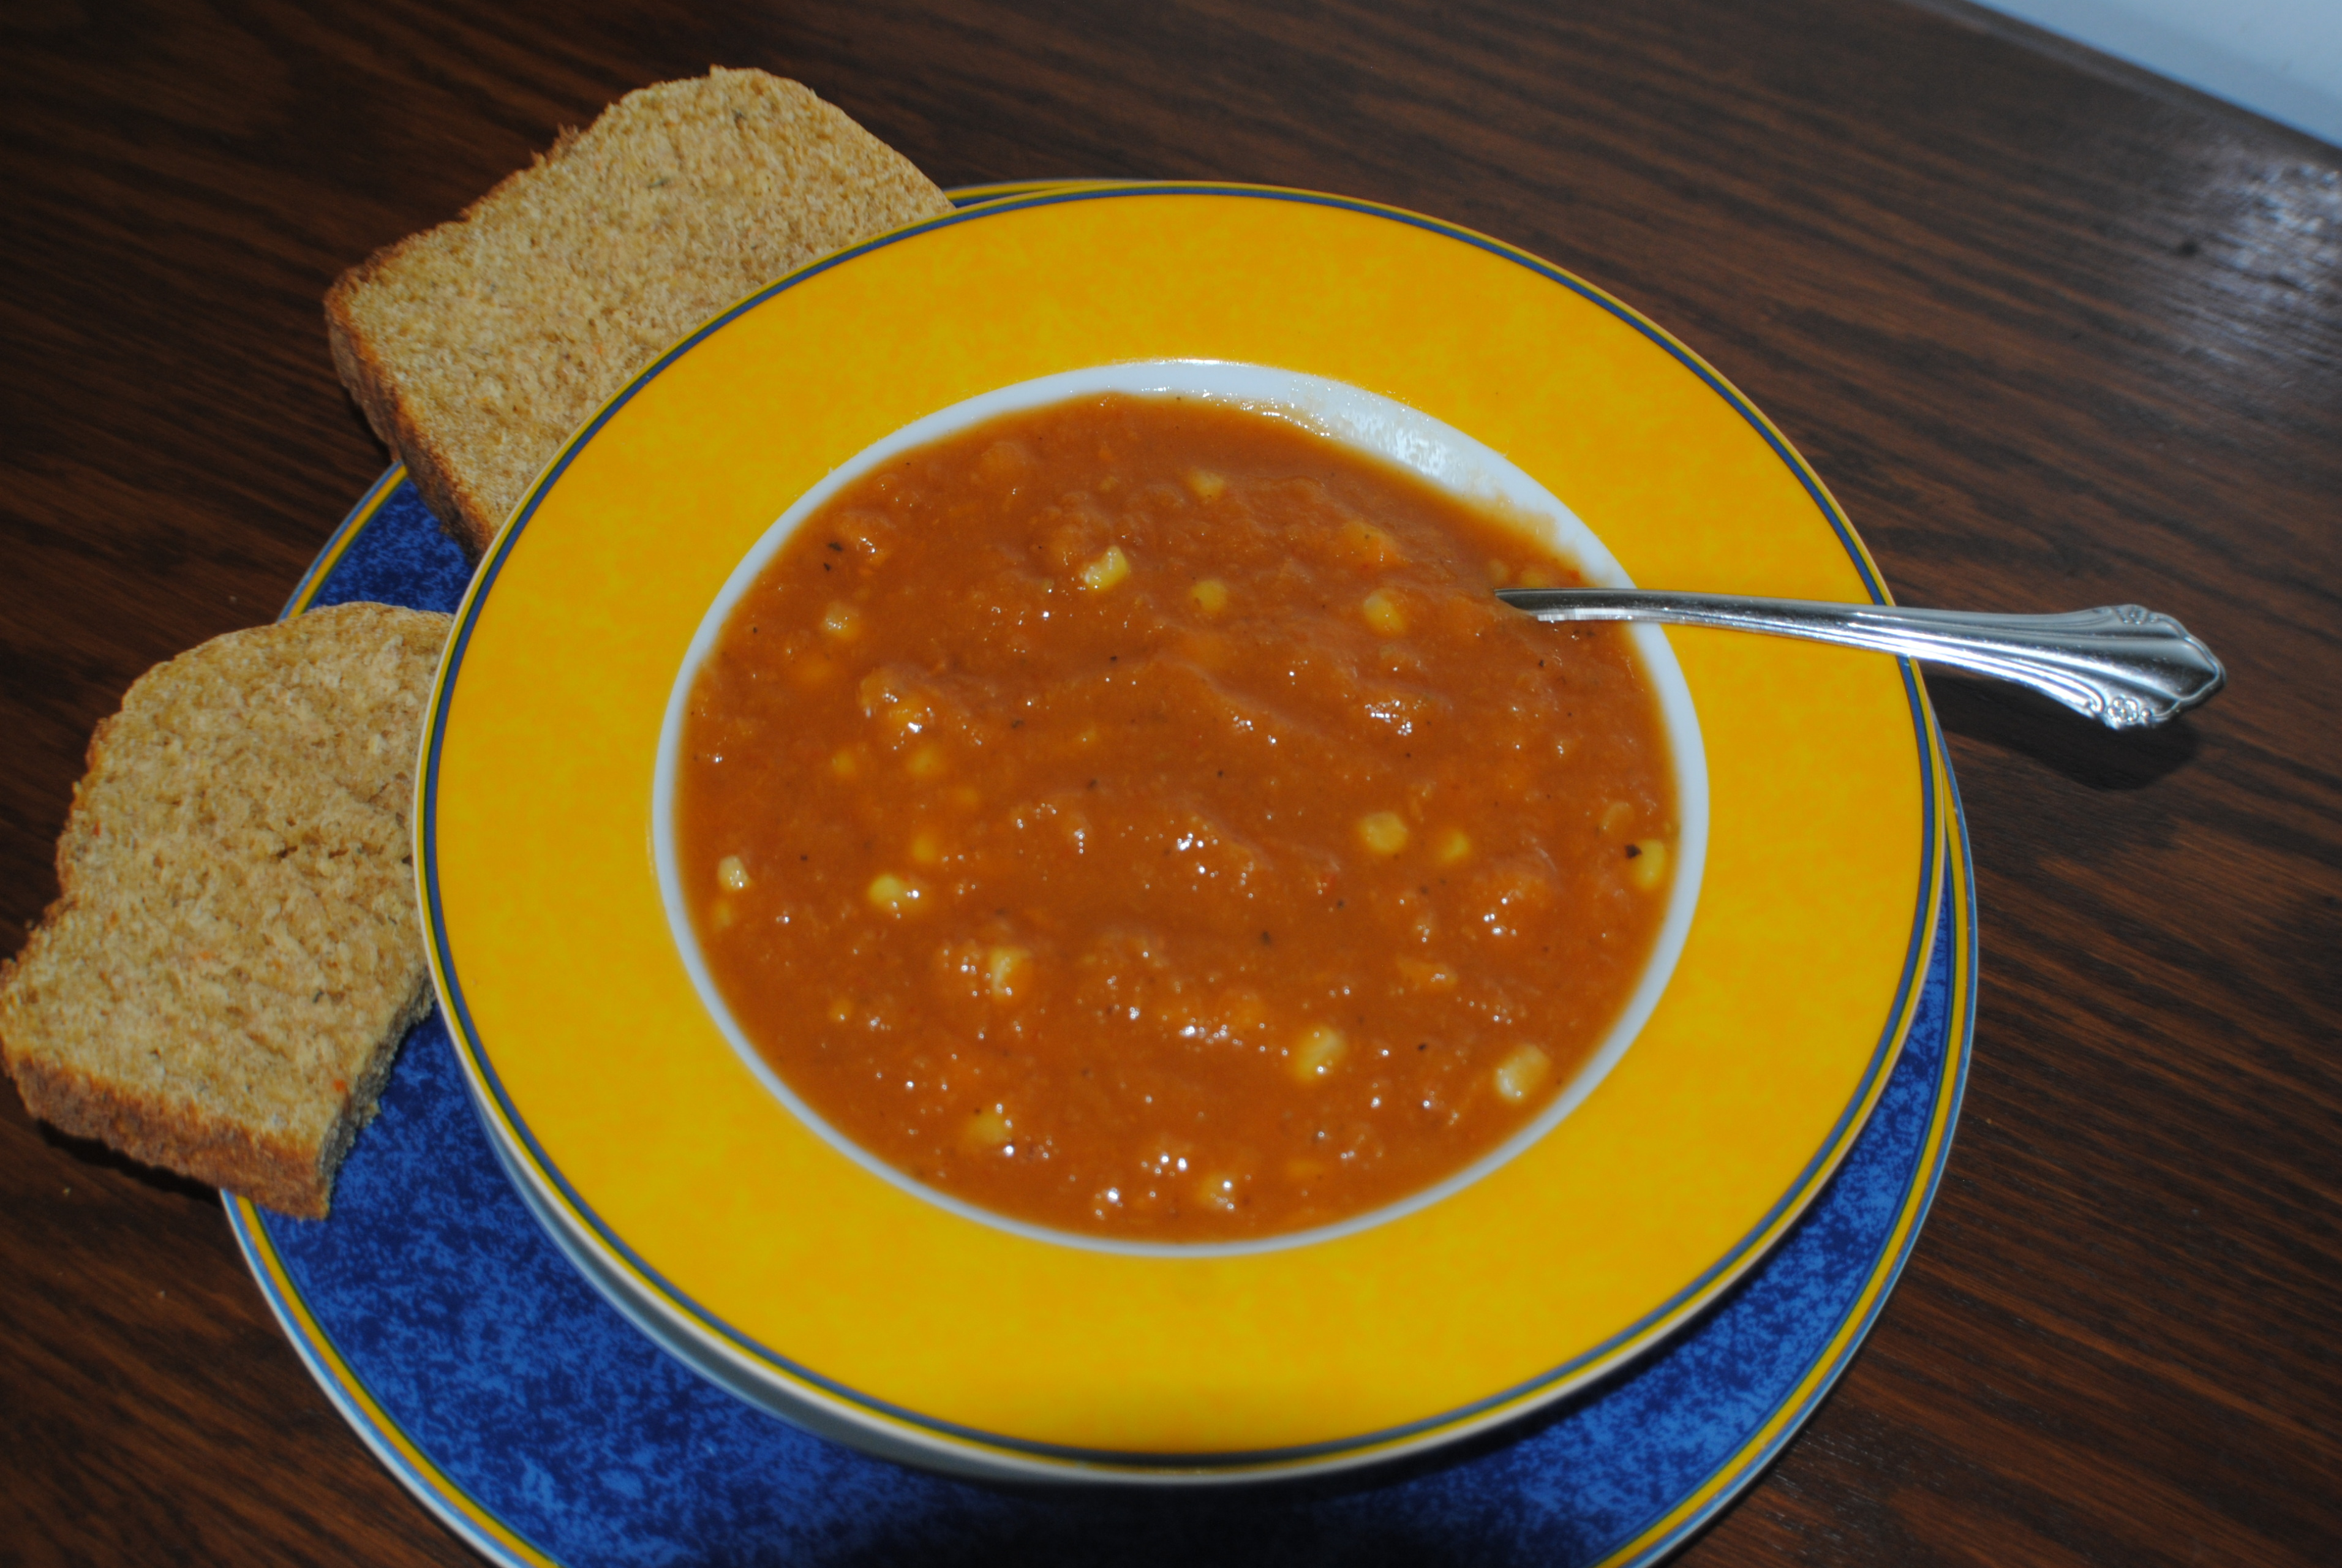 SWEET POTATO, ROASTED RED PEPPER, CORN & JALAPENO PEPPER SOUP